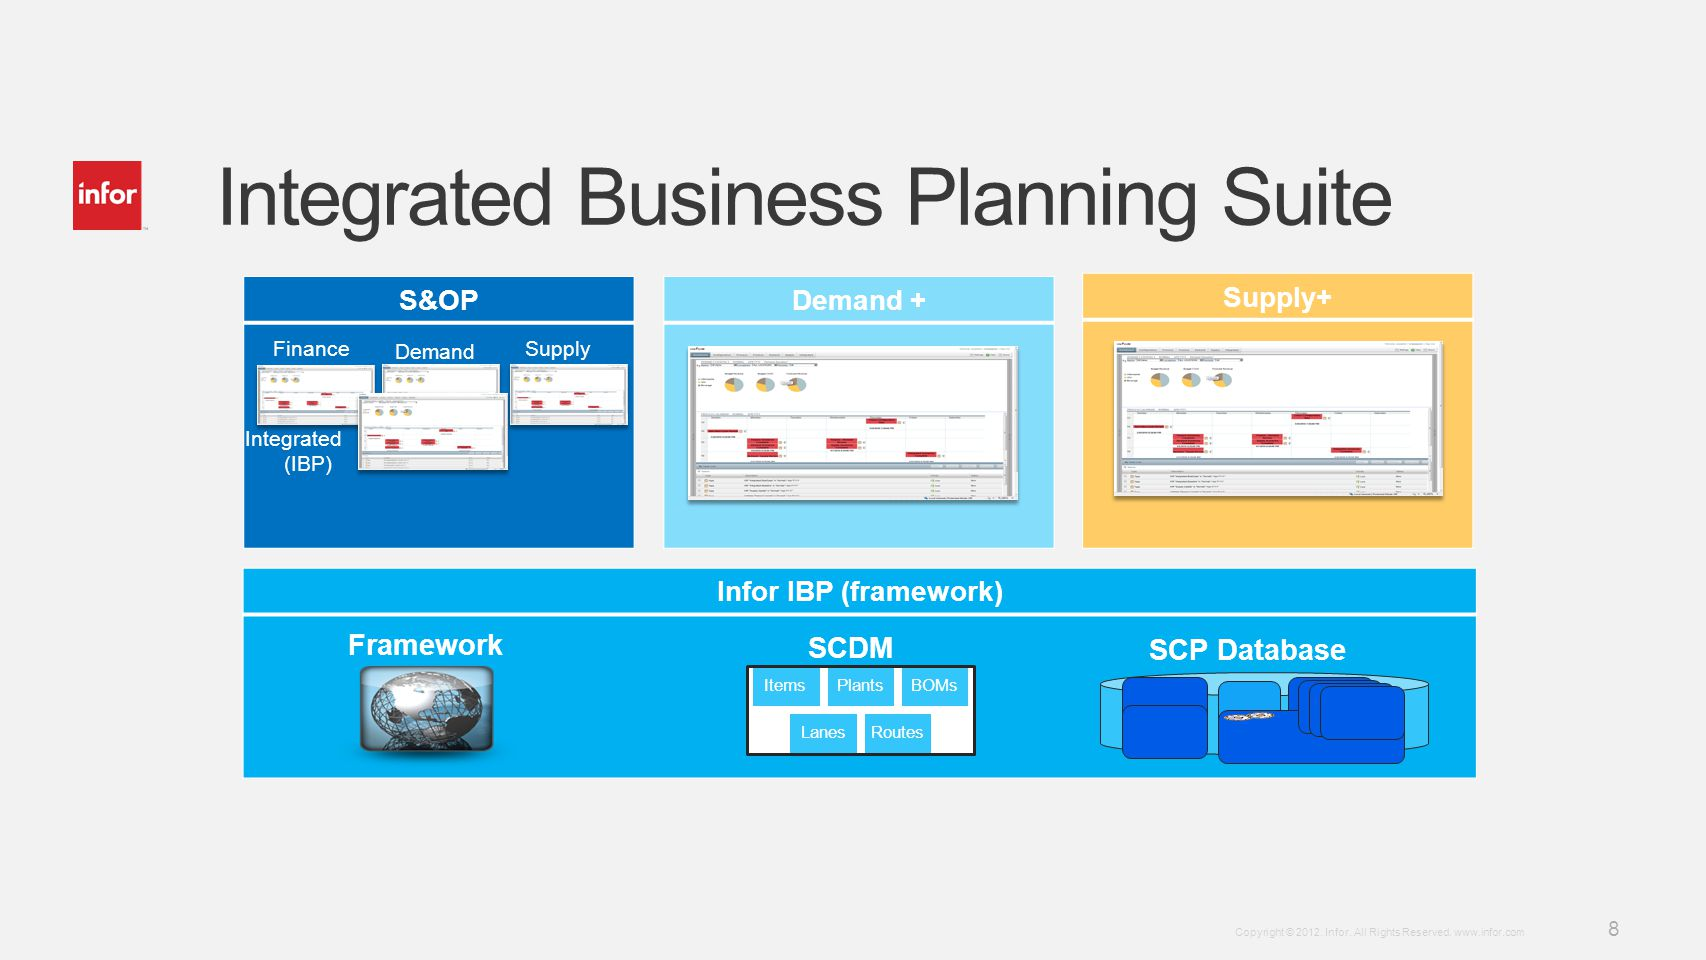 Integrated Business Planning Suite